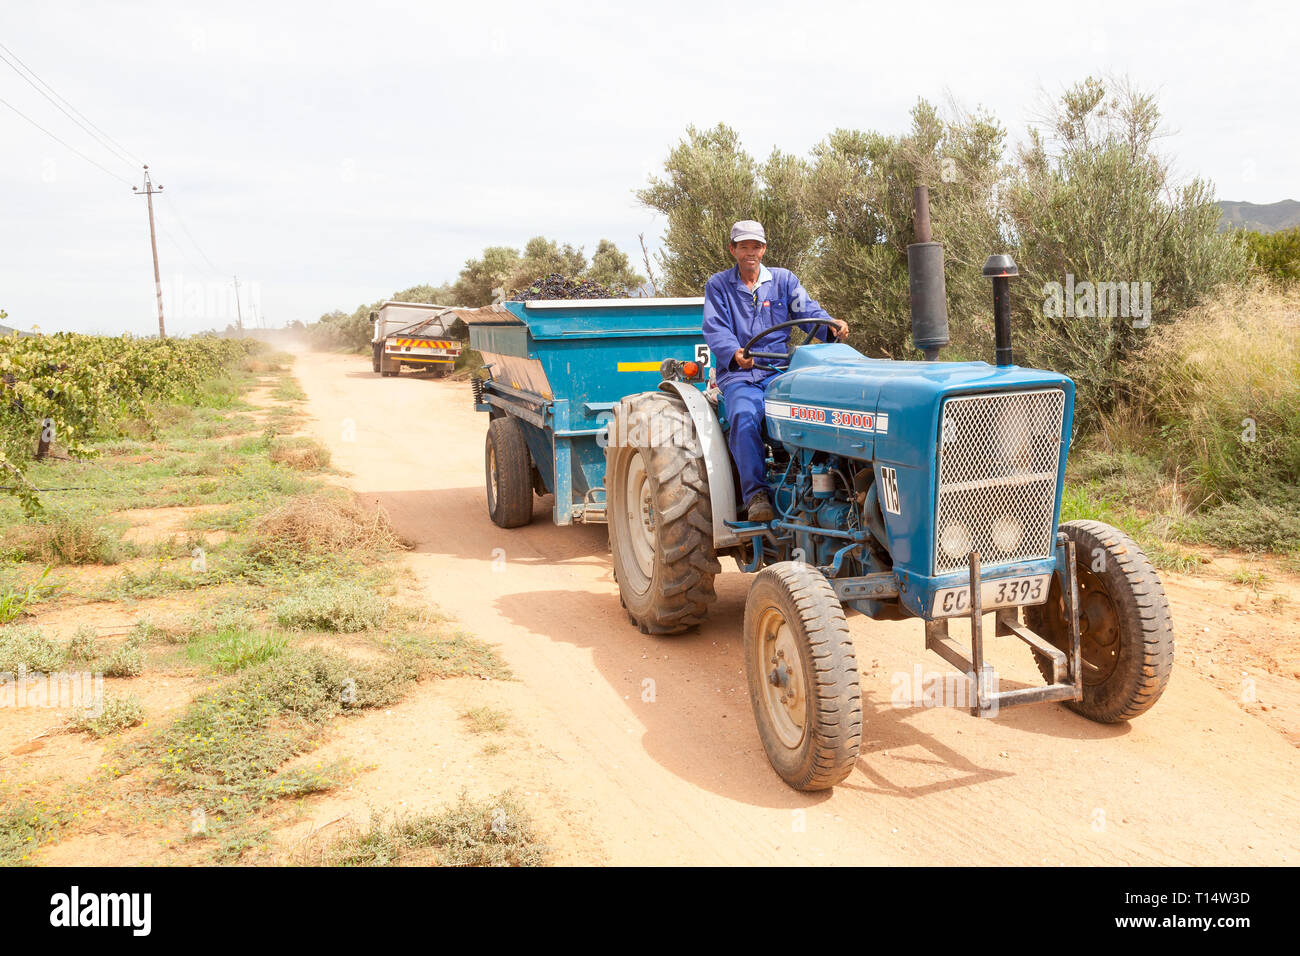 Shiraz grape harvest, Robertson, Robertson Wine Valley, Western Cape, South Africa. Coloured worker with tractor and trailer full of grapes - Stock Image